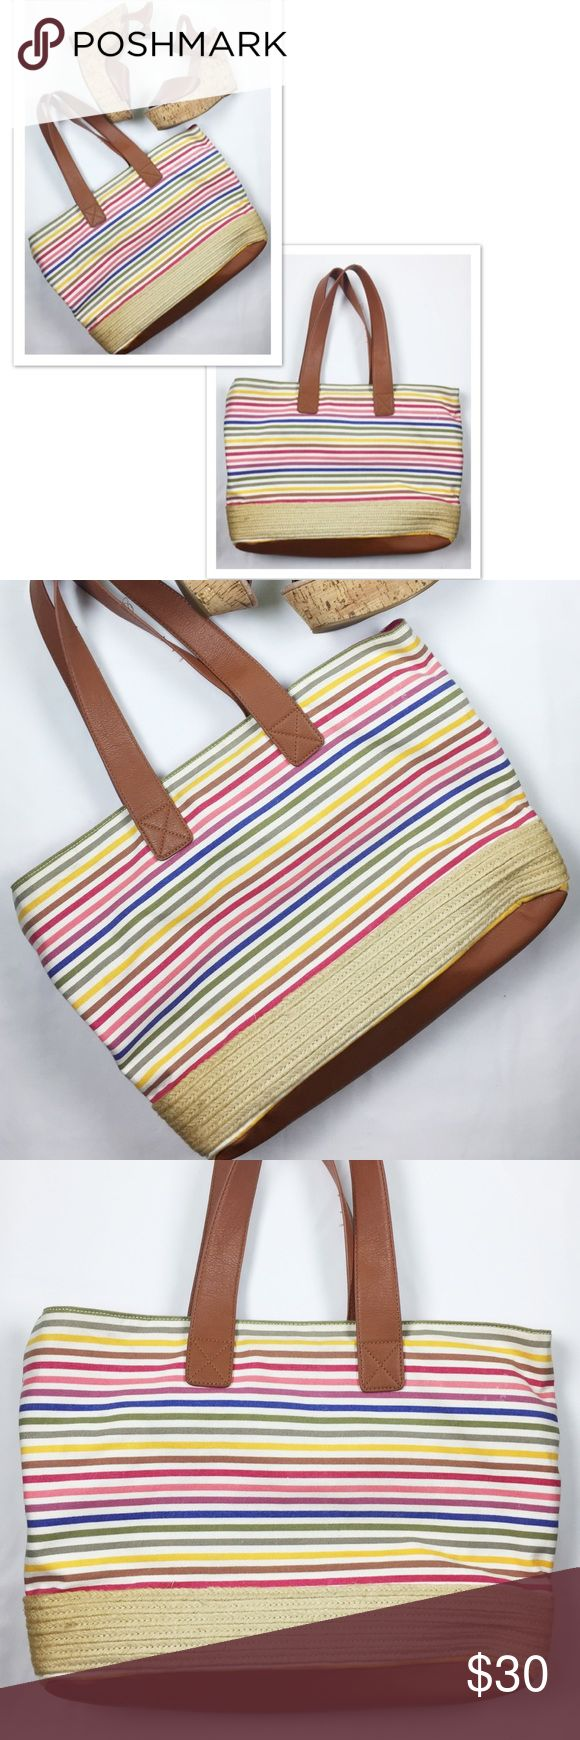 Aldo striped tote bag Aldo striped tote bag/purse in perfect condition. No rips, stains, or tears. Smoke free home and fast shipping Aldo Bags Totes